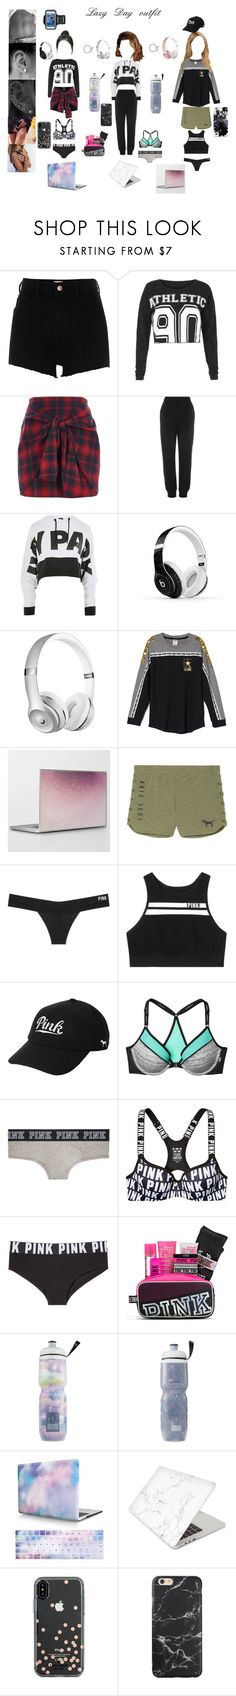 """Lazy day"" by katland09 ❤ liked on Polyvore featuring River Island, Lorna Jane, Topshop, Ivy Park, Beats by Dr. Dre, Victoria's Secret, Victoria's Secret PINK, Recover, Kate Spade and Fifth & Ninth"